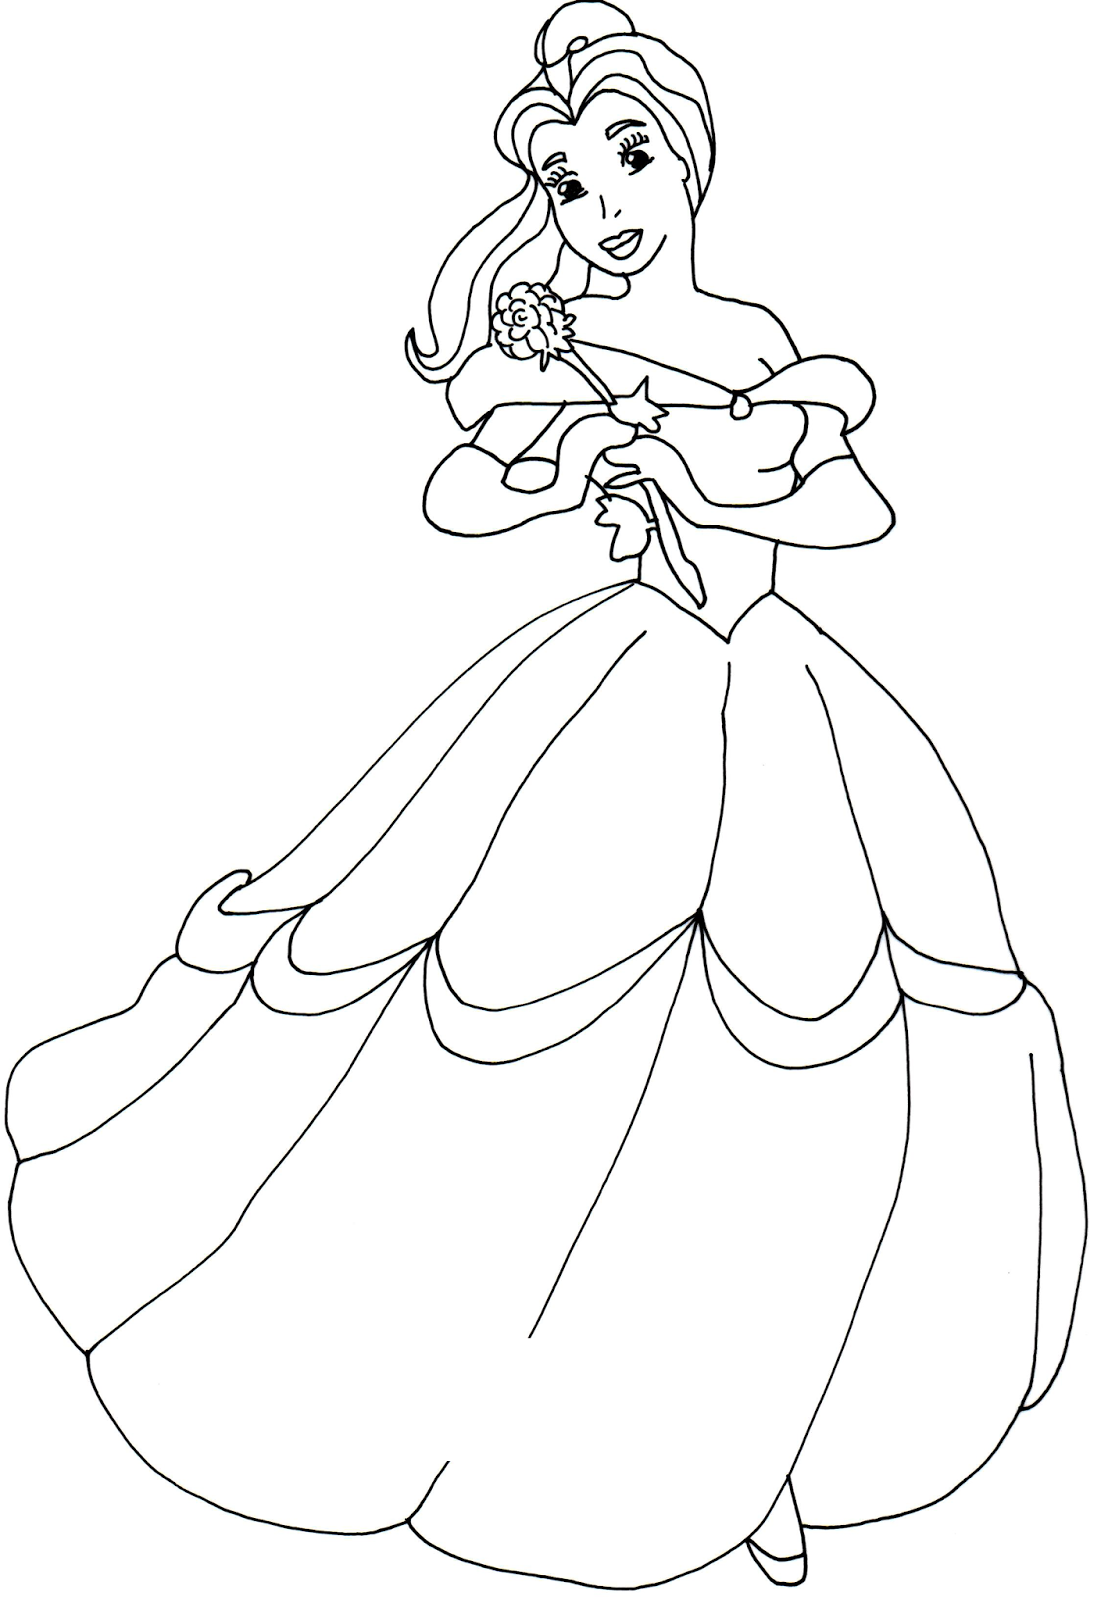 Princess Belle Coloring Page - Coloring Home